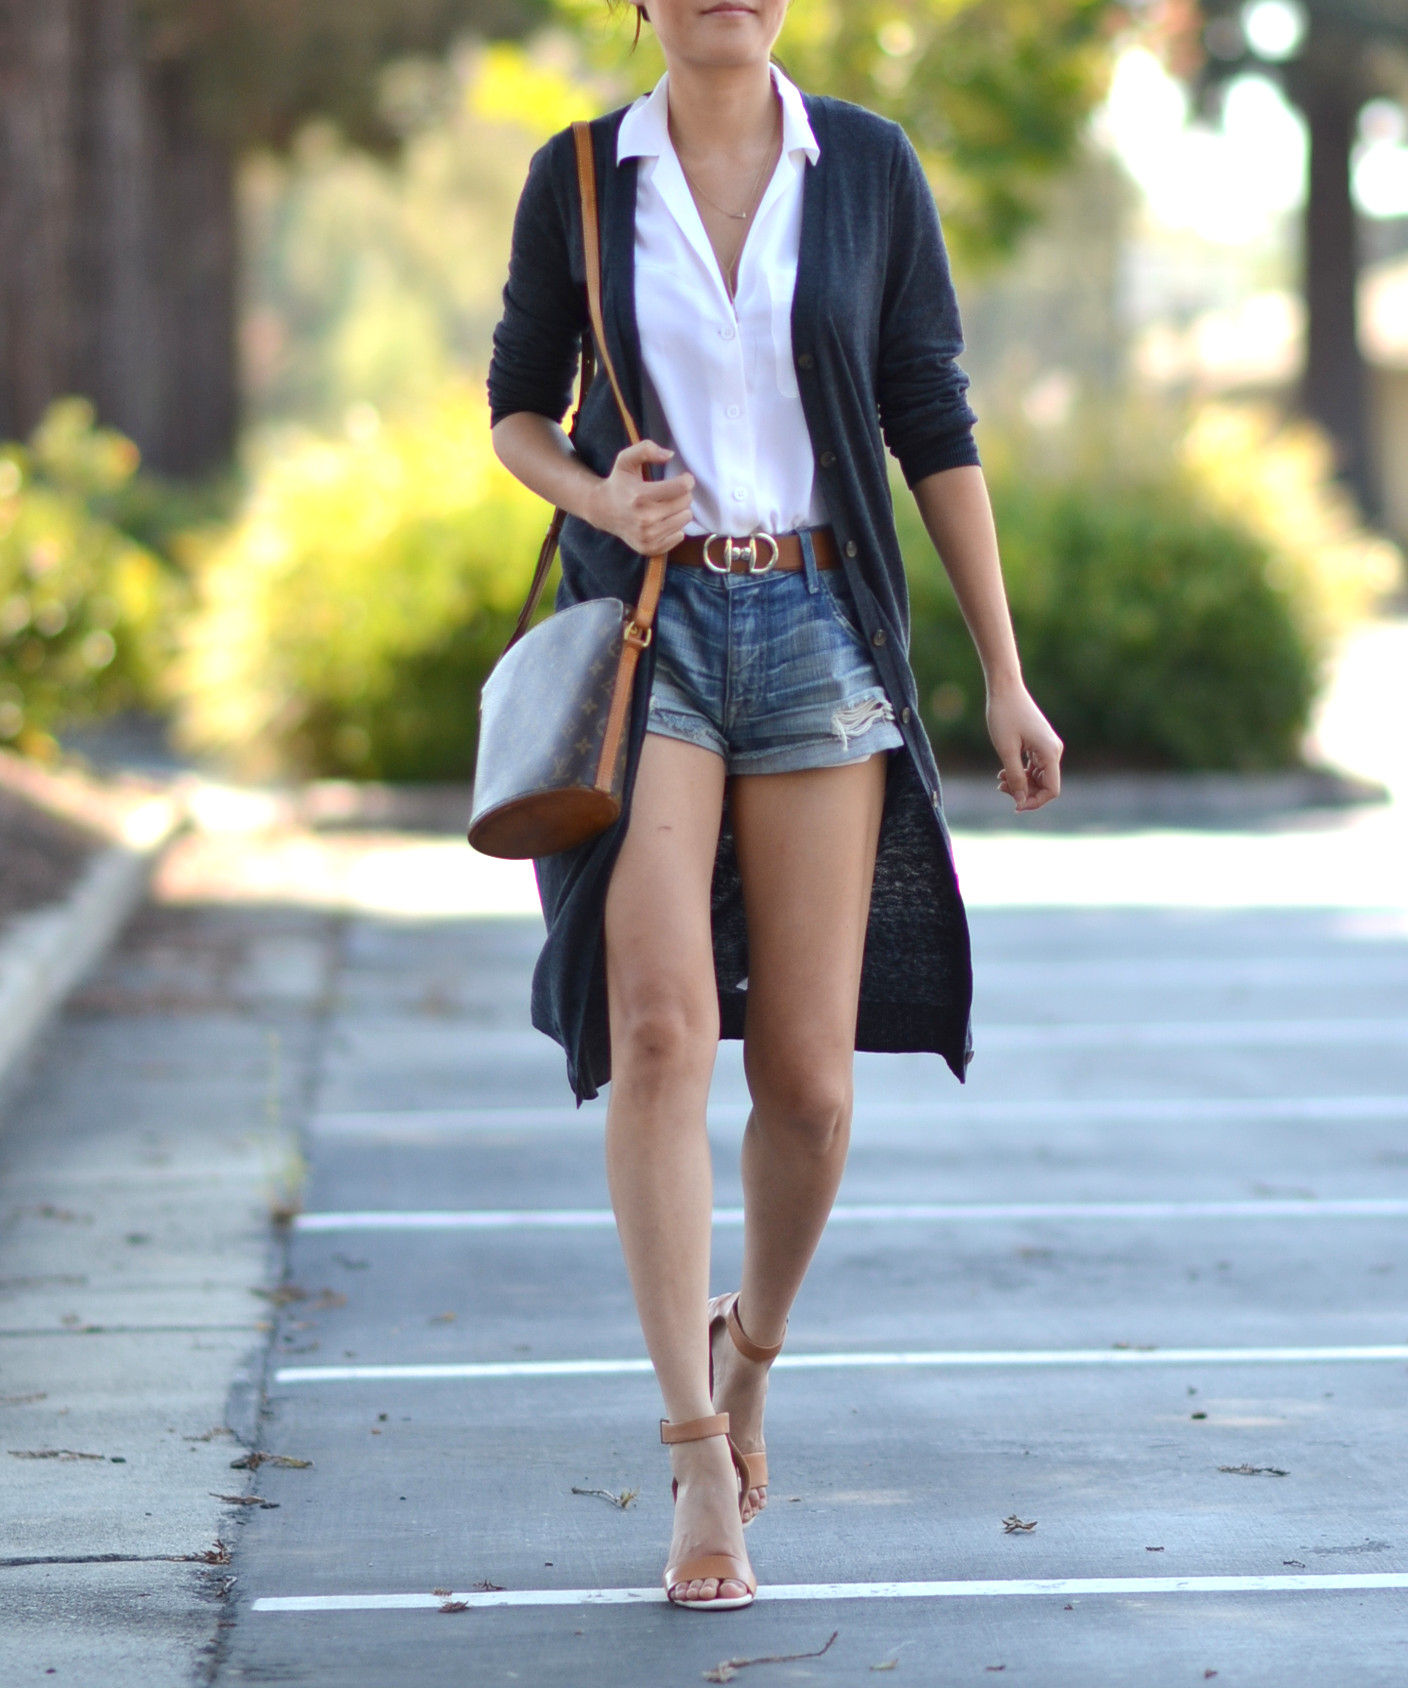 bdb02b6b09ce denim shorts silk blouse reversible belt long cardigan outfit with louis  vuitton druout bag